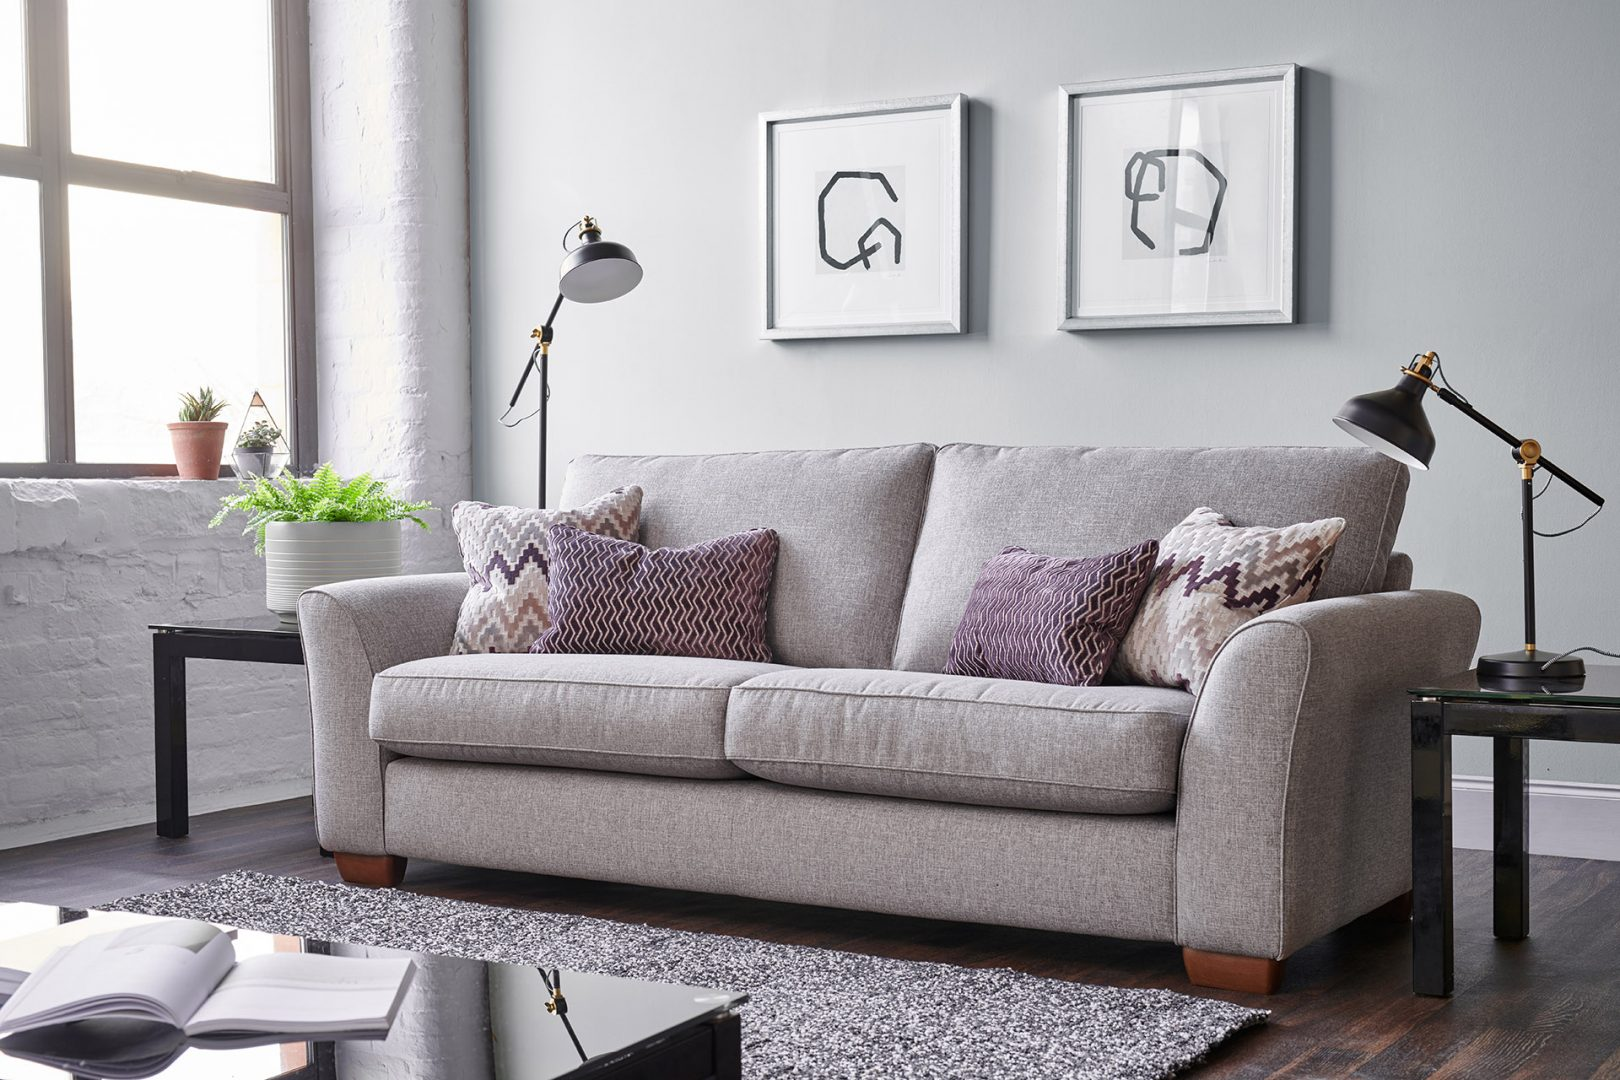 PICCADILLY 3 SEATER SOFA